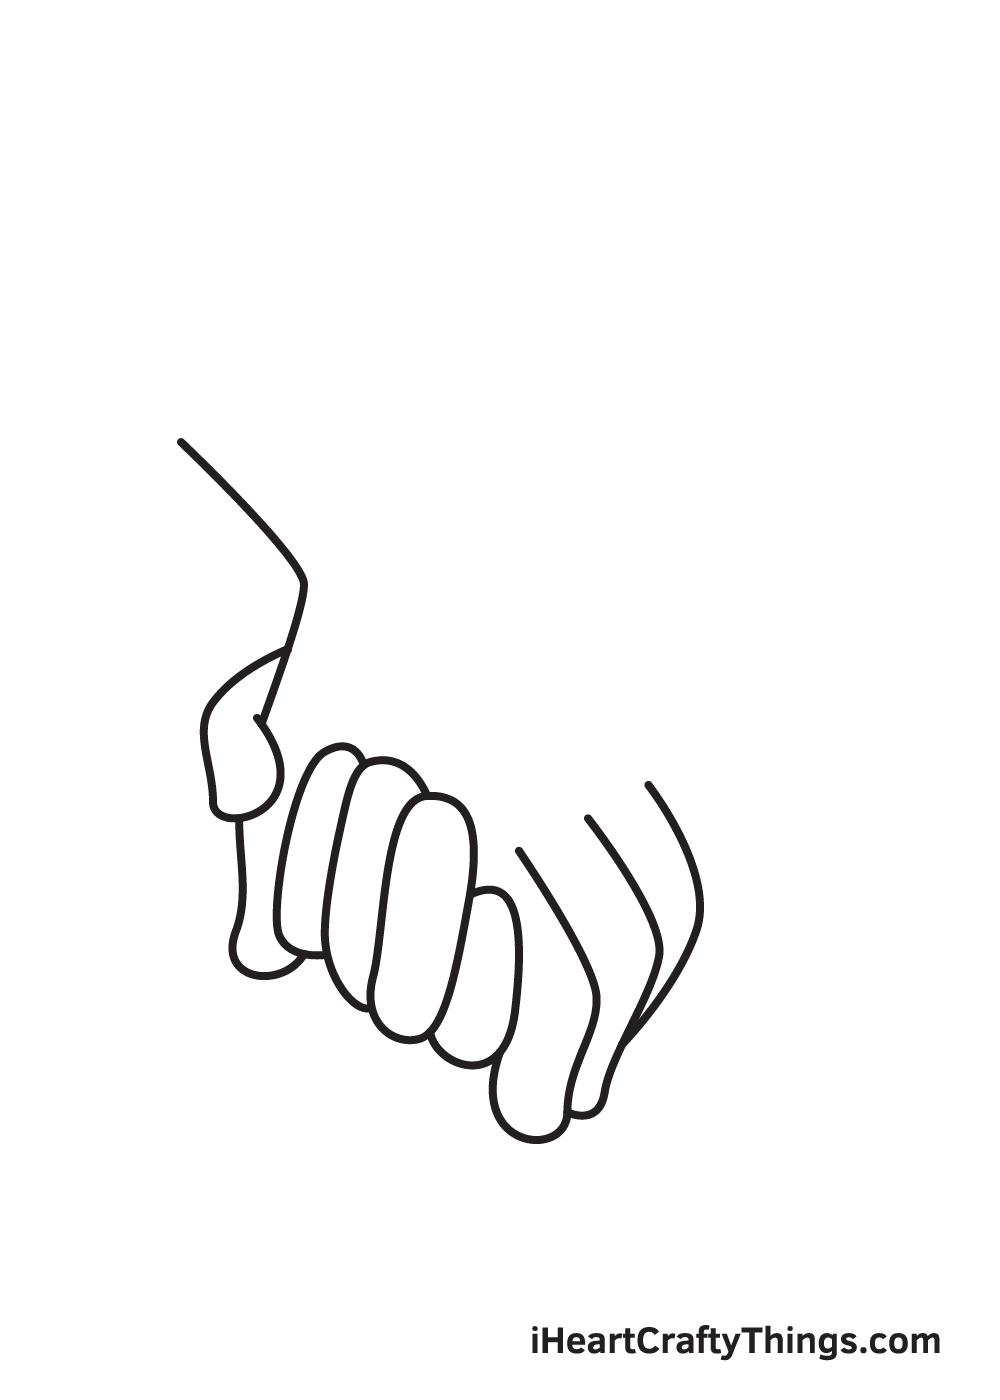 holding hands drawing step 6